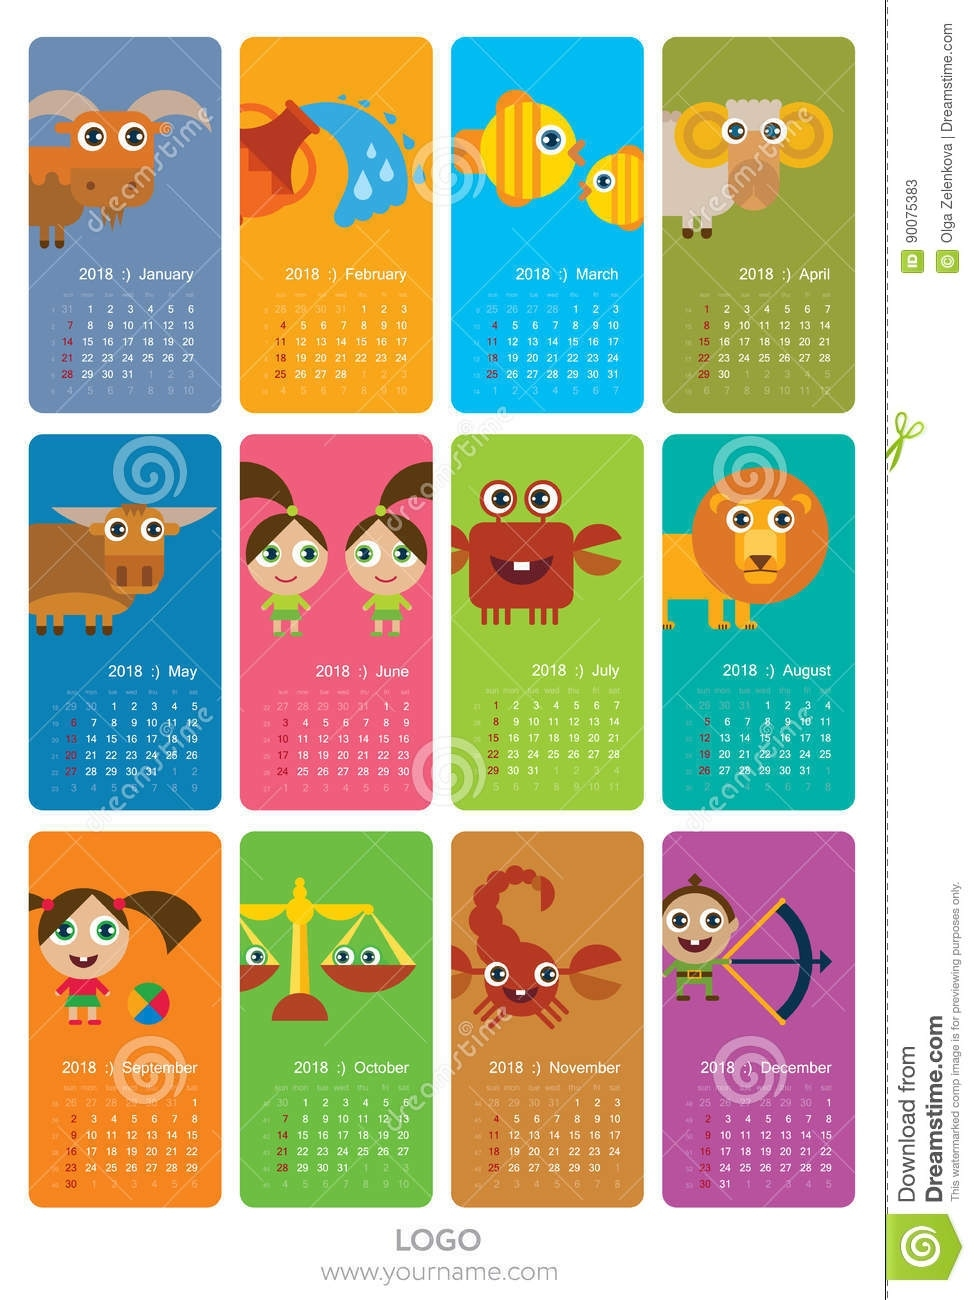 Calendar With Zodiac Signs Stock Illustration. Illustration Of Calendar For Zodiac Signs